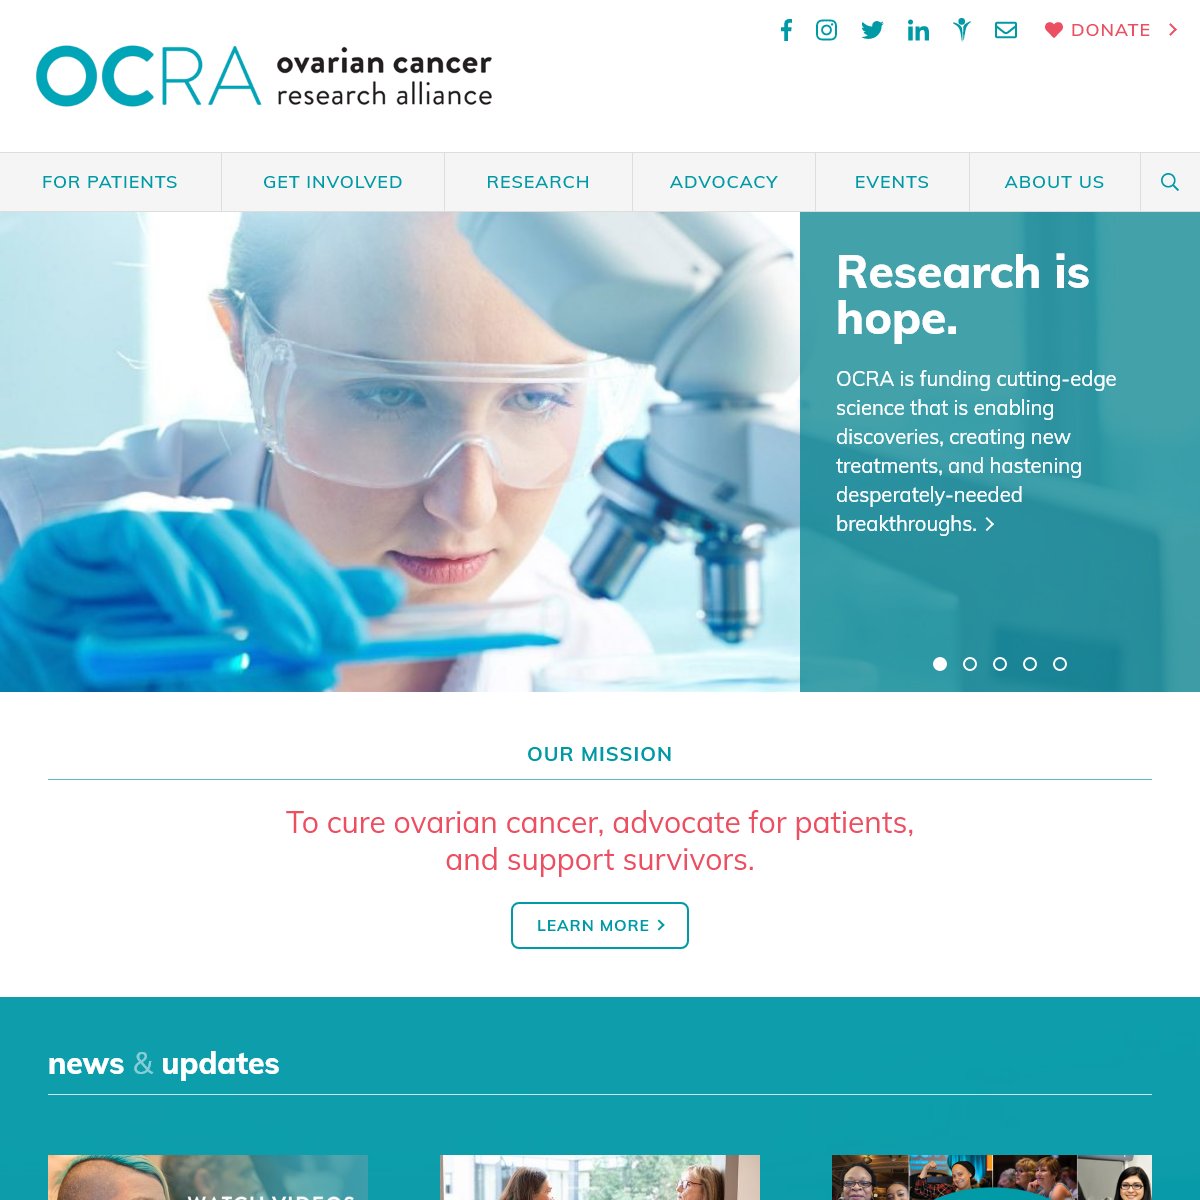 Ovarian Cancer Research Alliance - OCRA